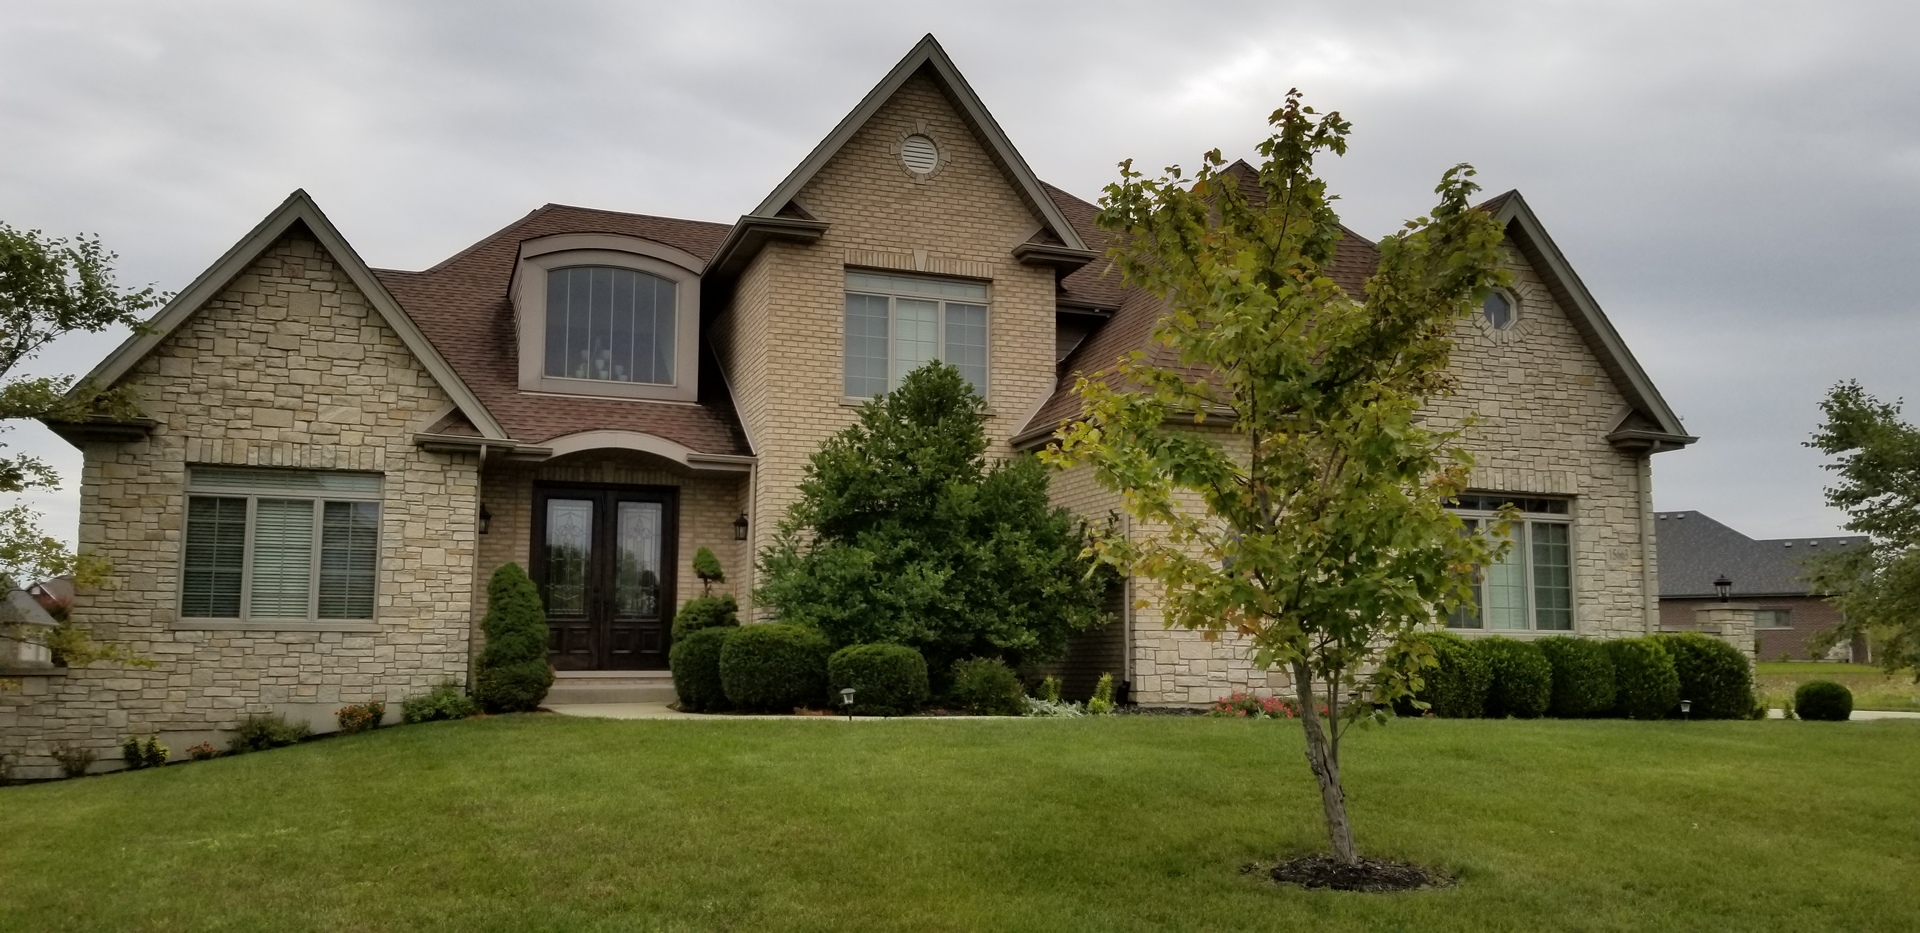 Property for sale at 15663 Jeanne Lane, Homer Glen,  Il 60491